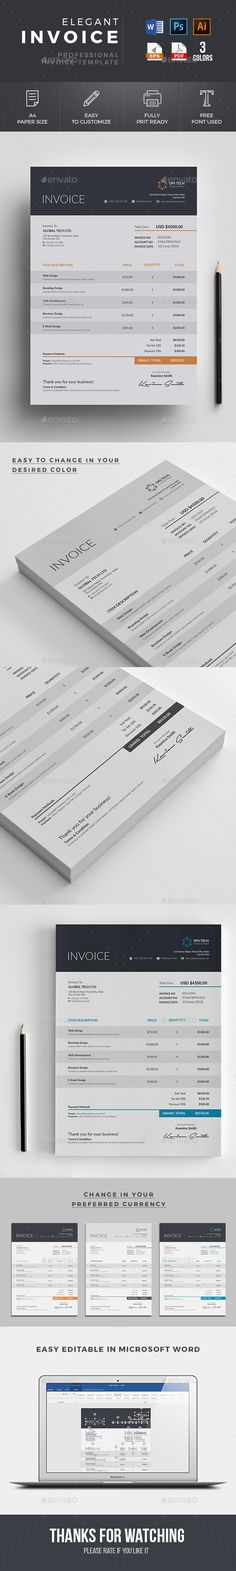 91 best Invoices images on Pinterest in 2018   Invoice design     Buy Invoice by Classicdesignp on GraphicRiver  Invoice Template Use this Clean  Invoice for personal  corporate or company billing purpose  This Simple